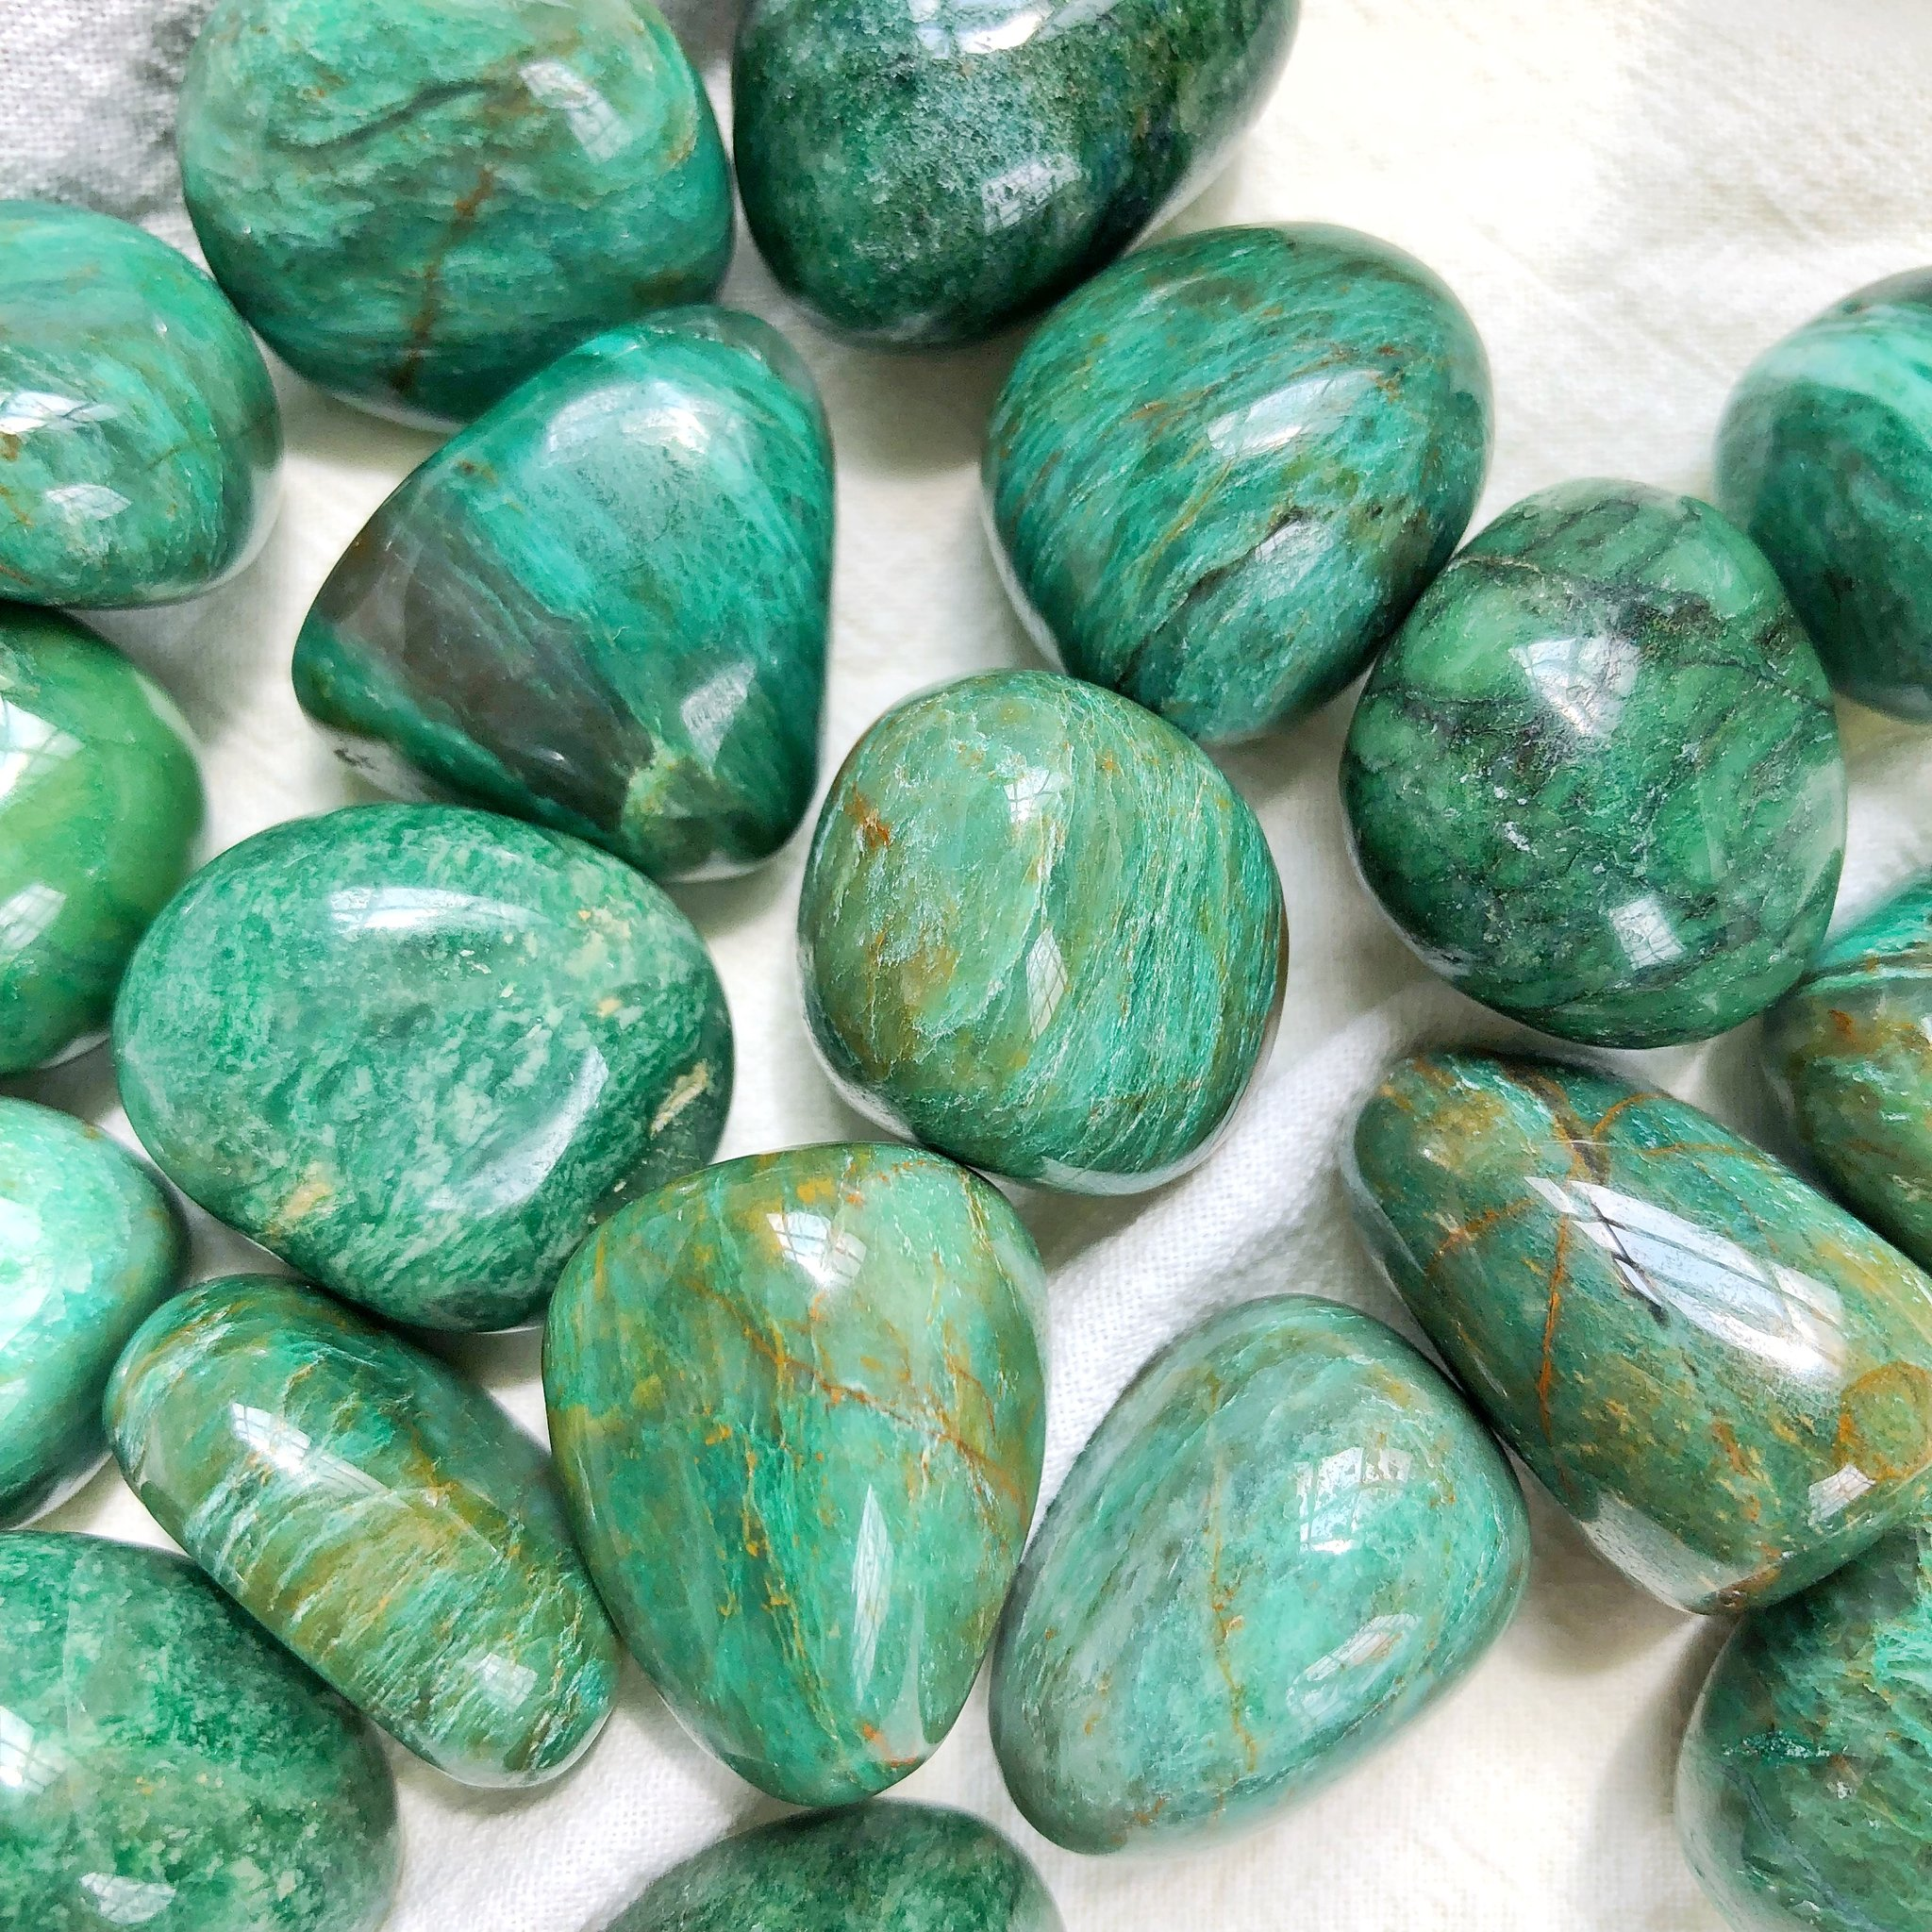 Fuchsite Meanings, Properties and Uses